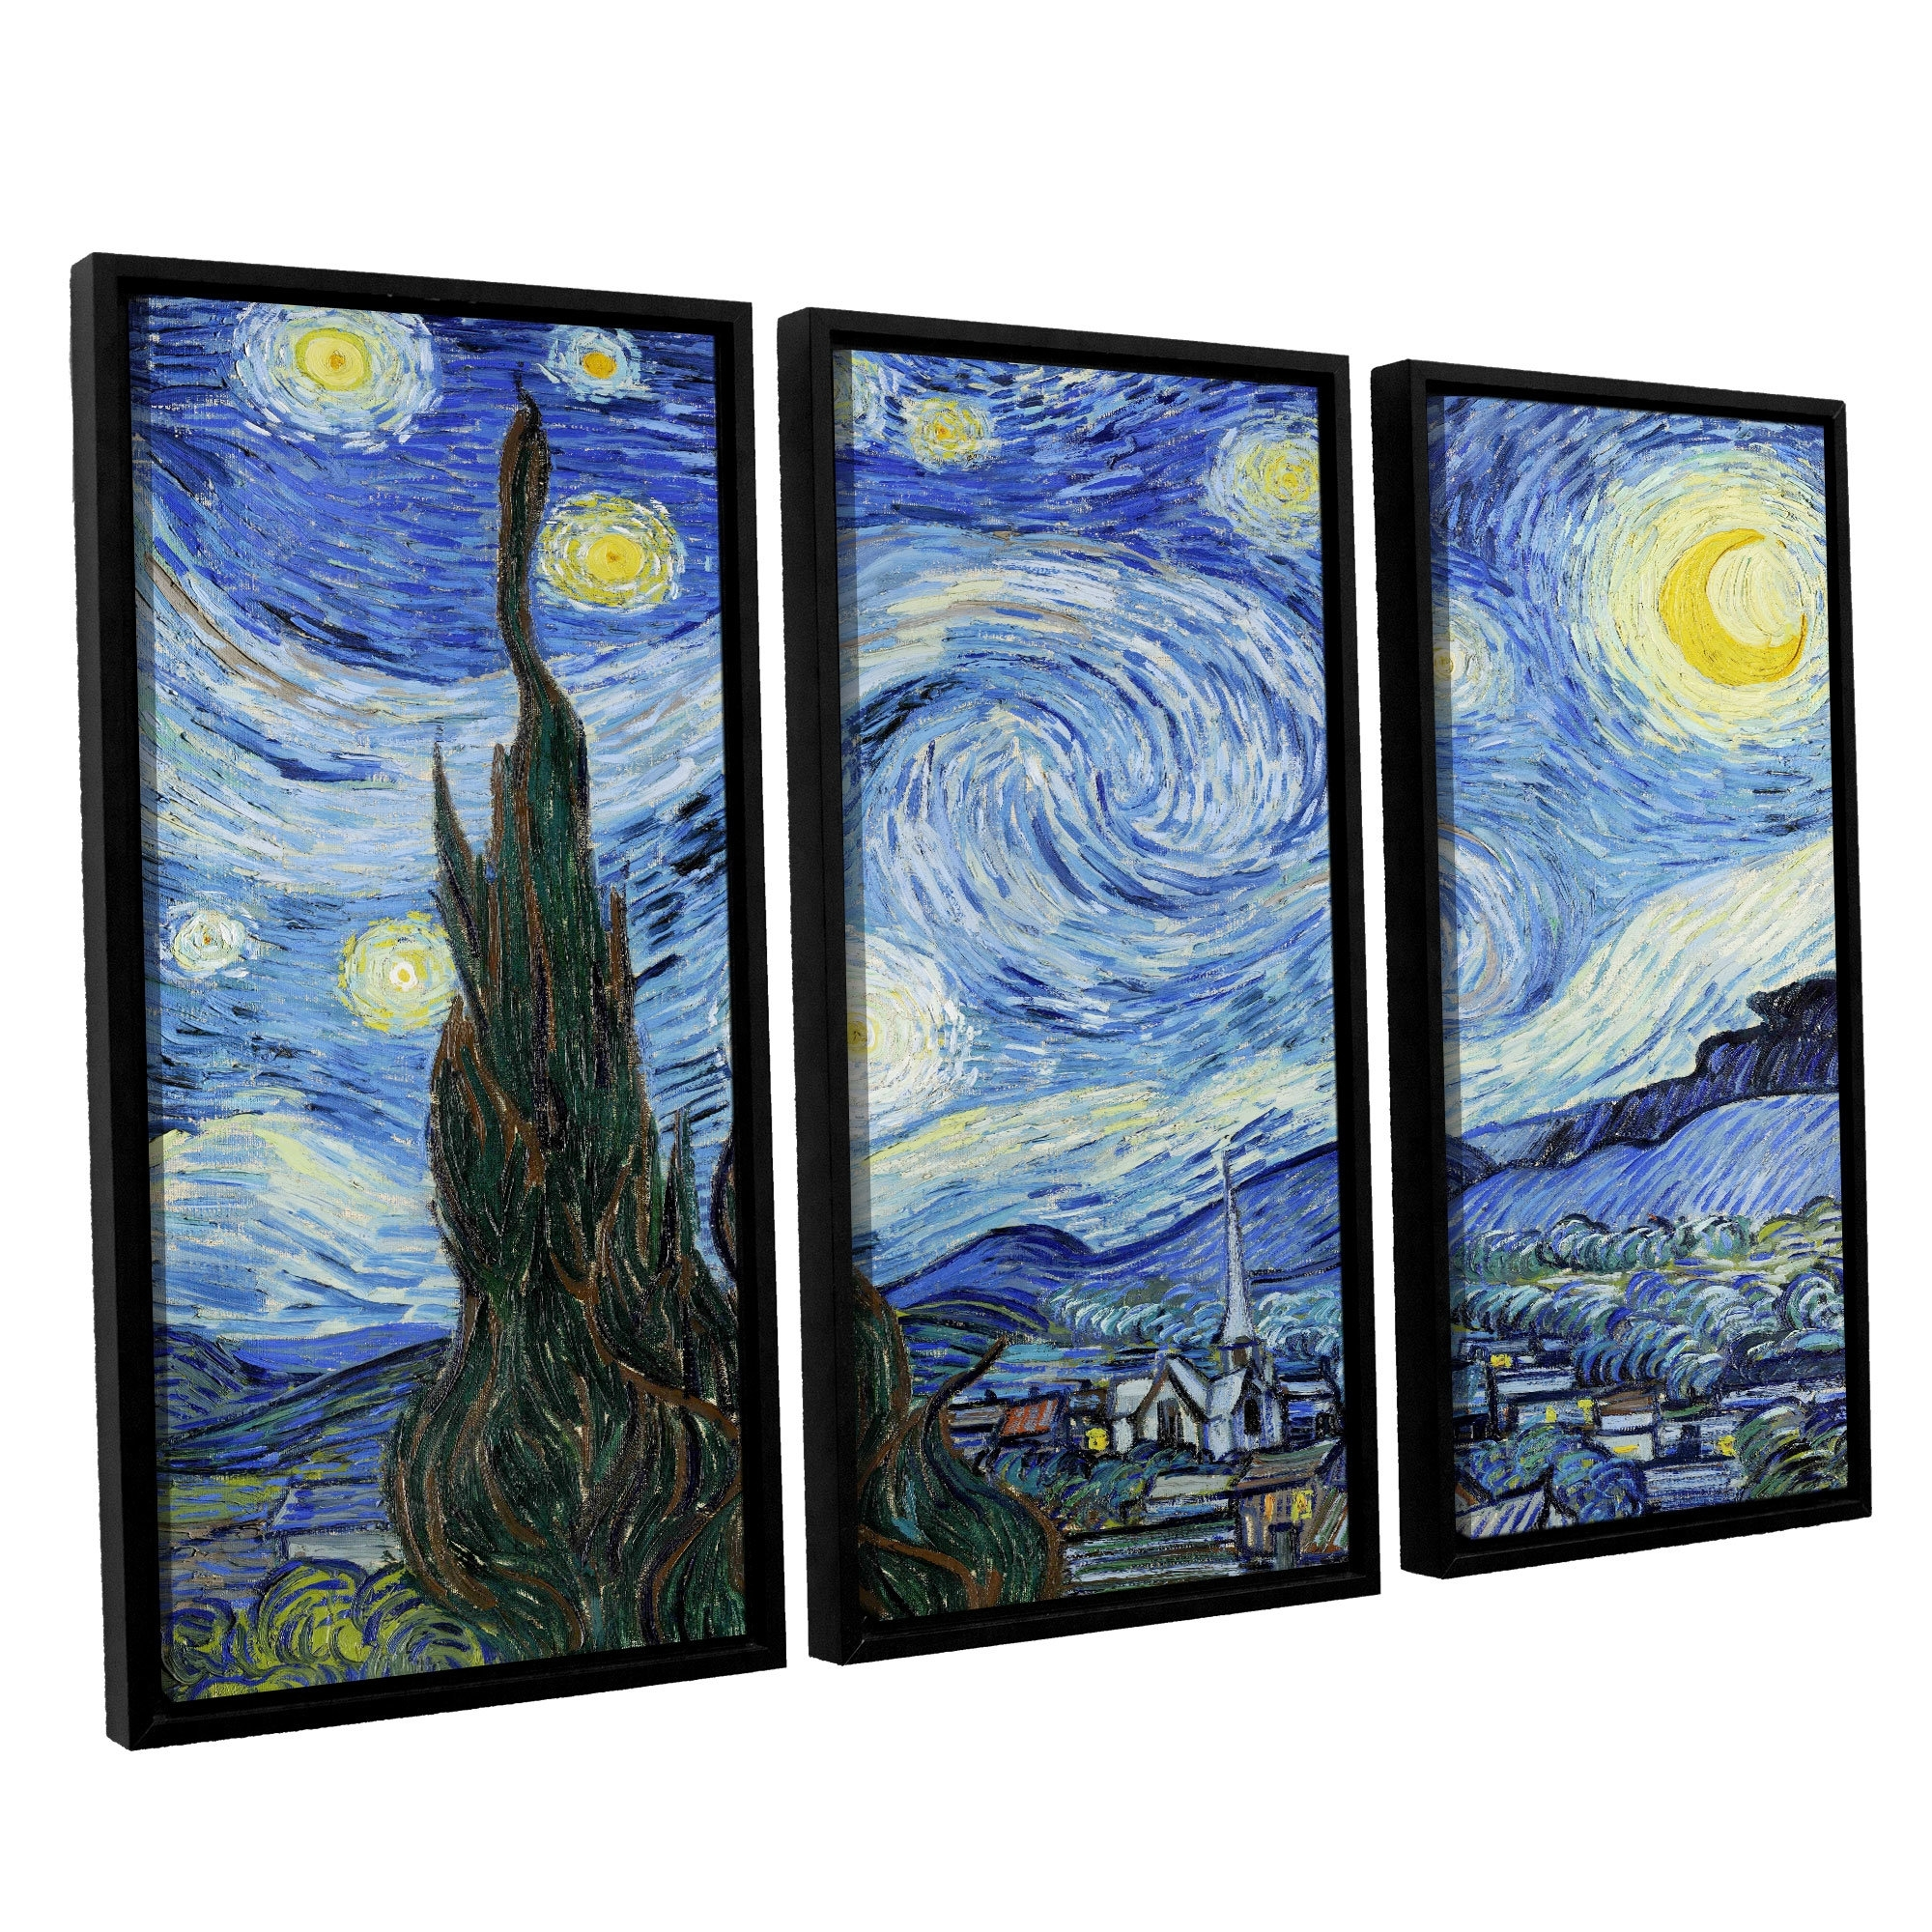 Artwall Starry Night (Lighter Version)Vincent Van Gogh 3 Piece For Latest Vincent Van Gogh Multi Piece Wall Art (View 6 of 20)